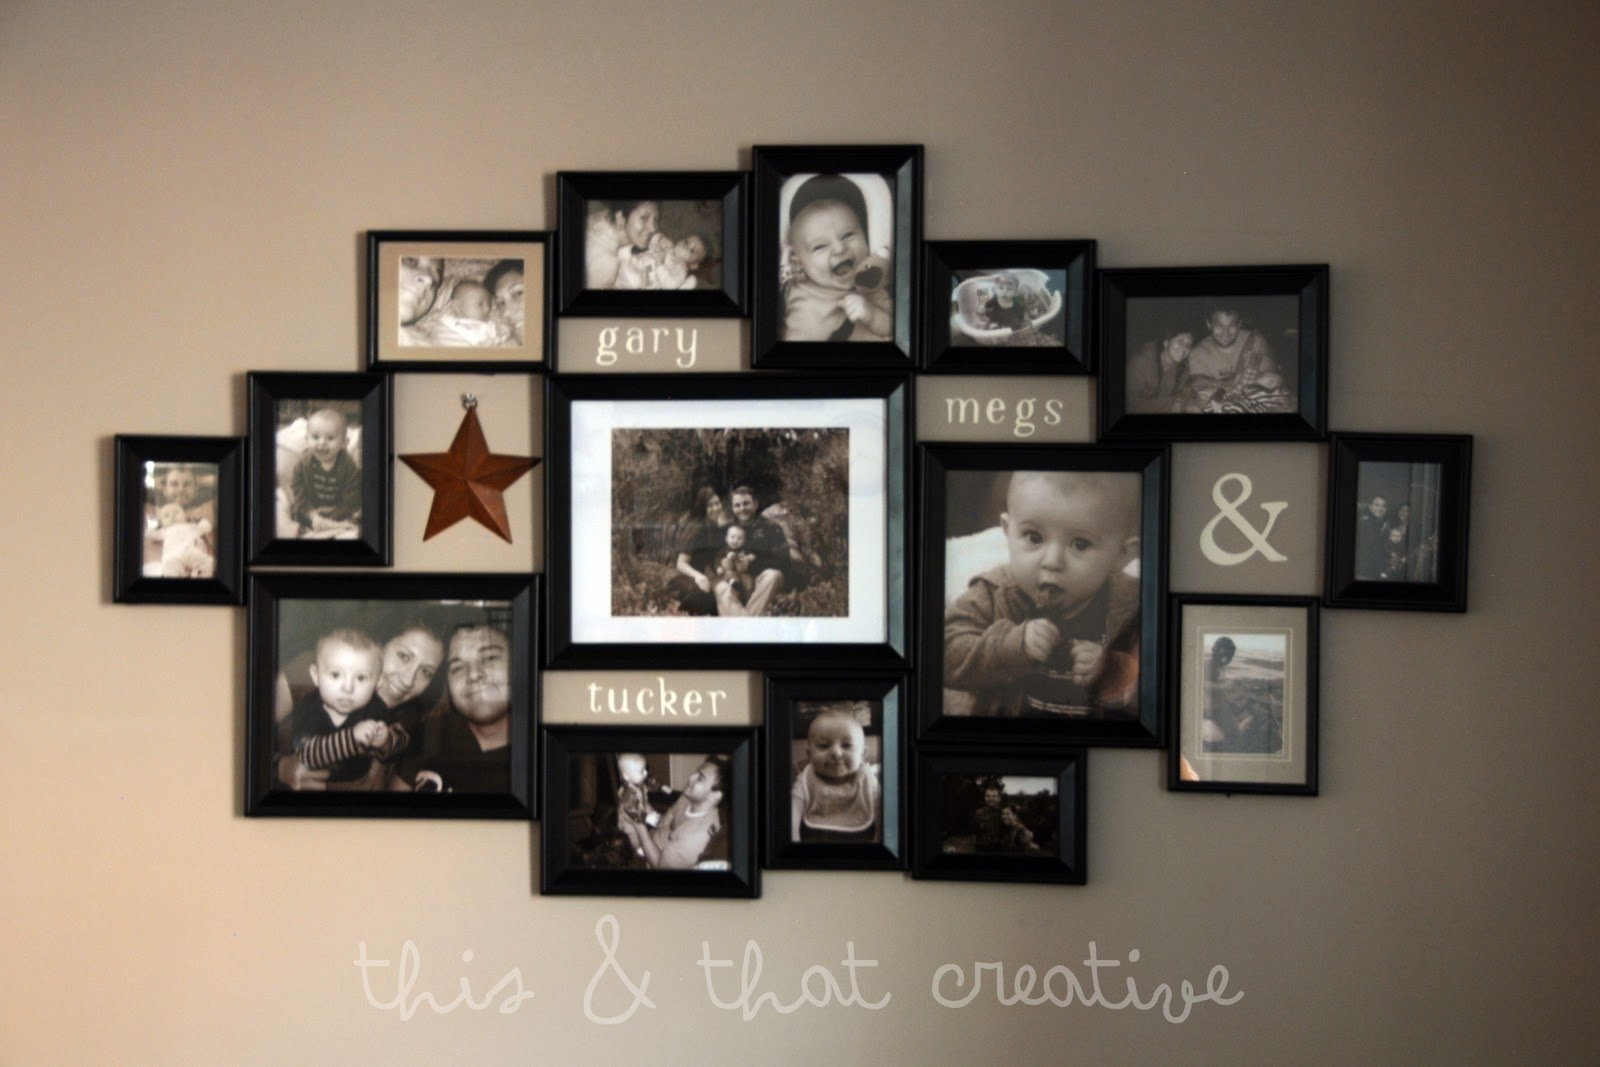 10 Trendy Photo Collage On Wall Ideas picture frame ideas first i laid out all the frames on the floor 2020